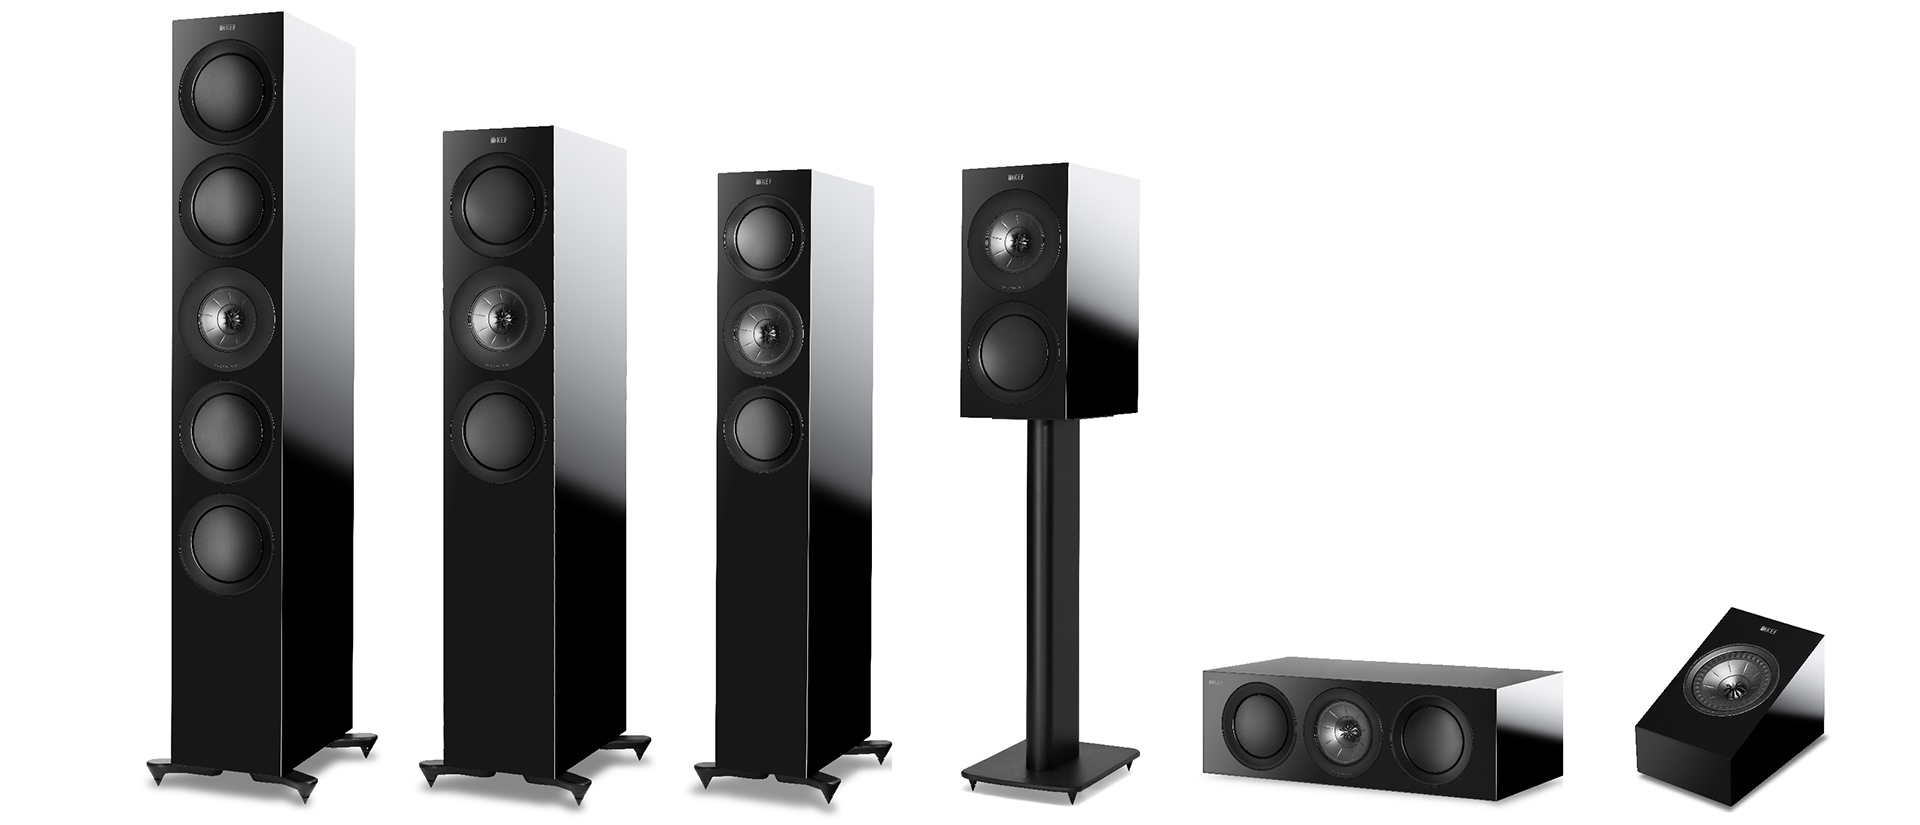 KEF R series family of speakers